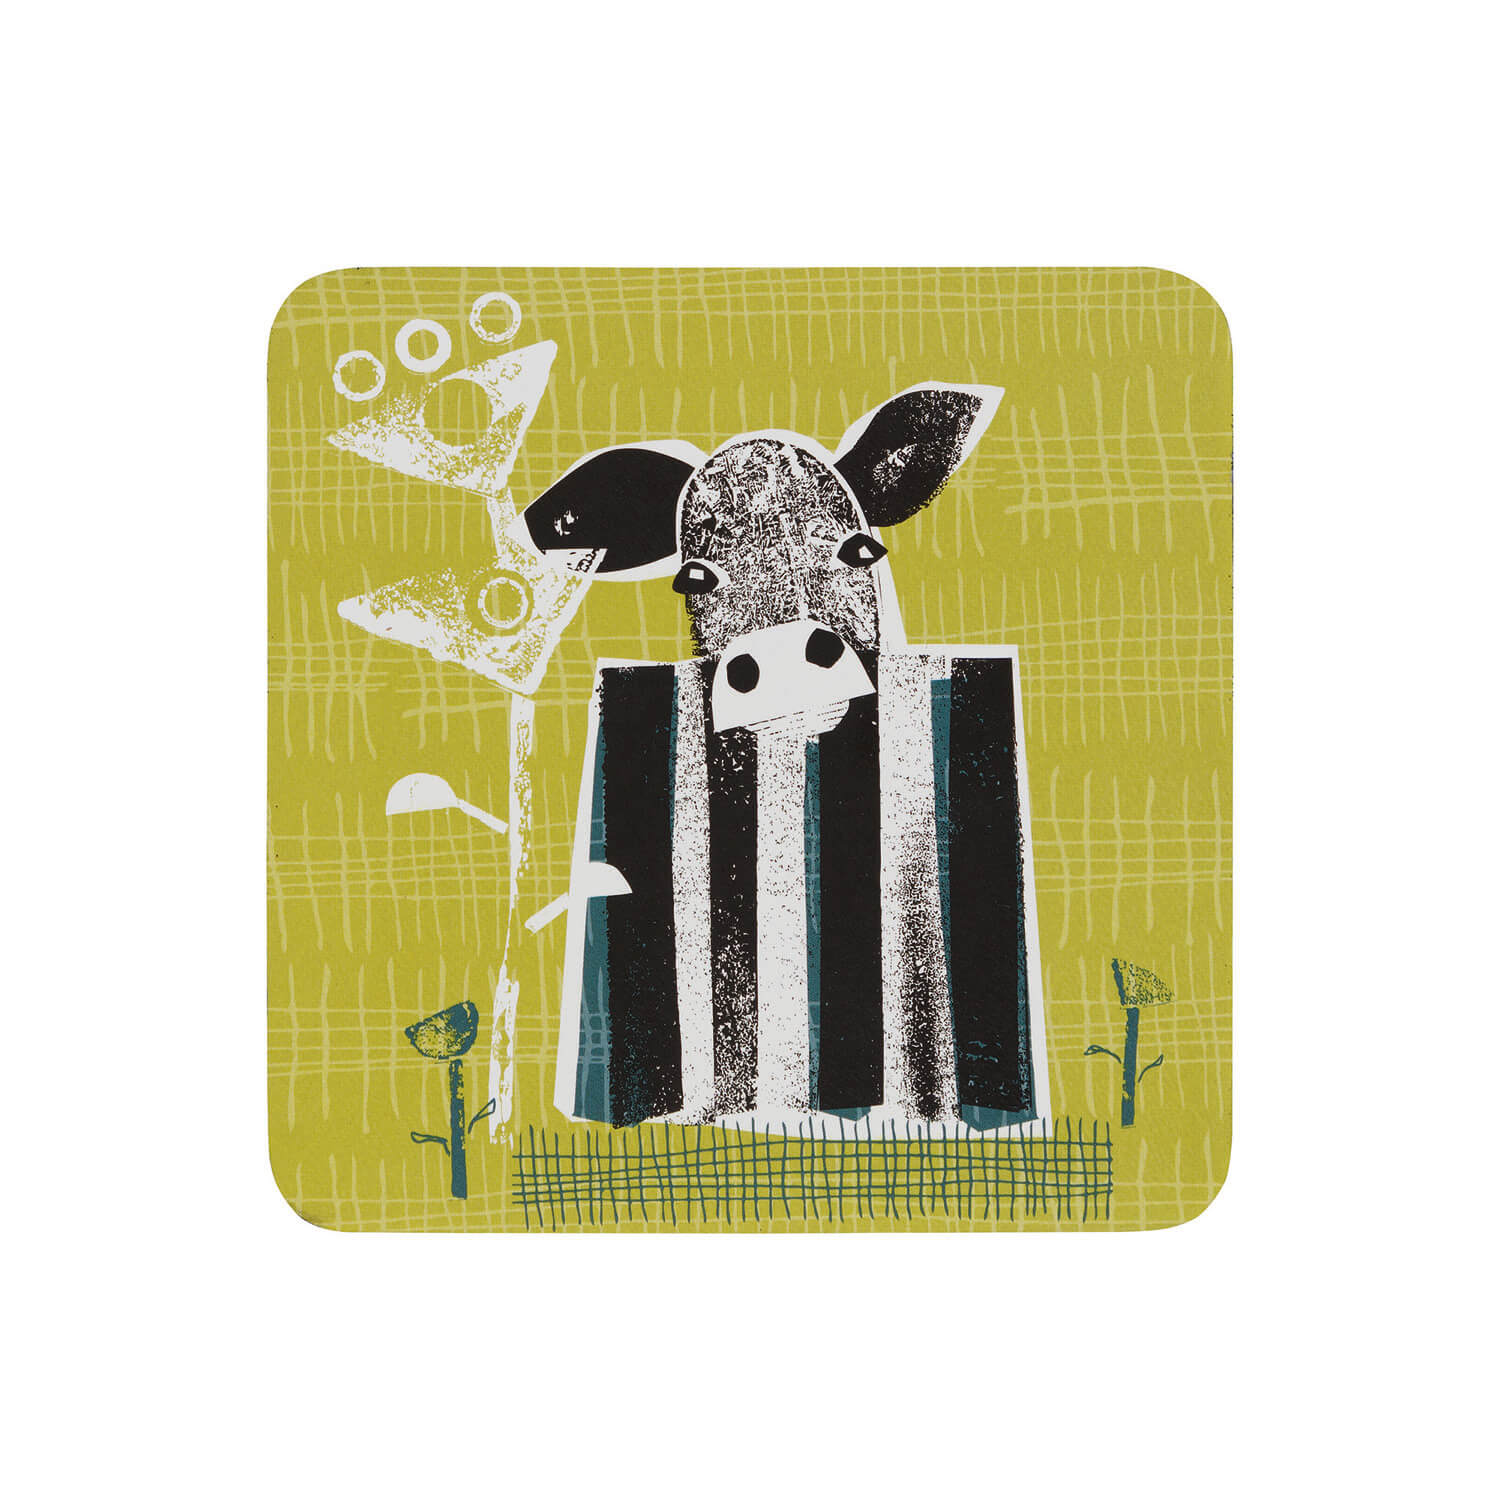 Image of Denby Coasters, Denby Cow, Set of 6